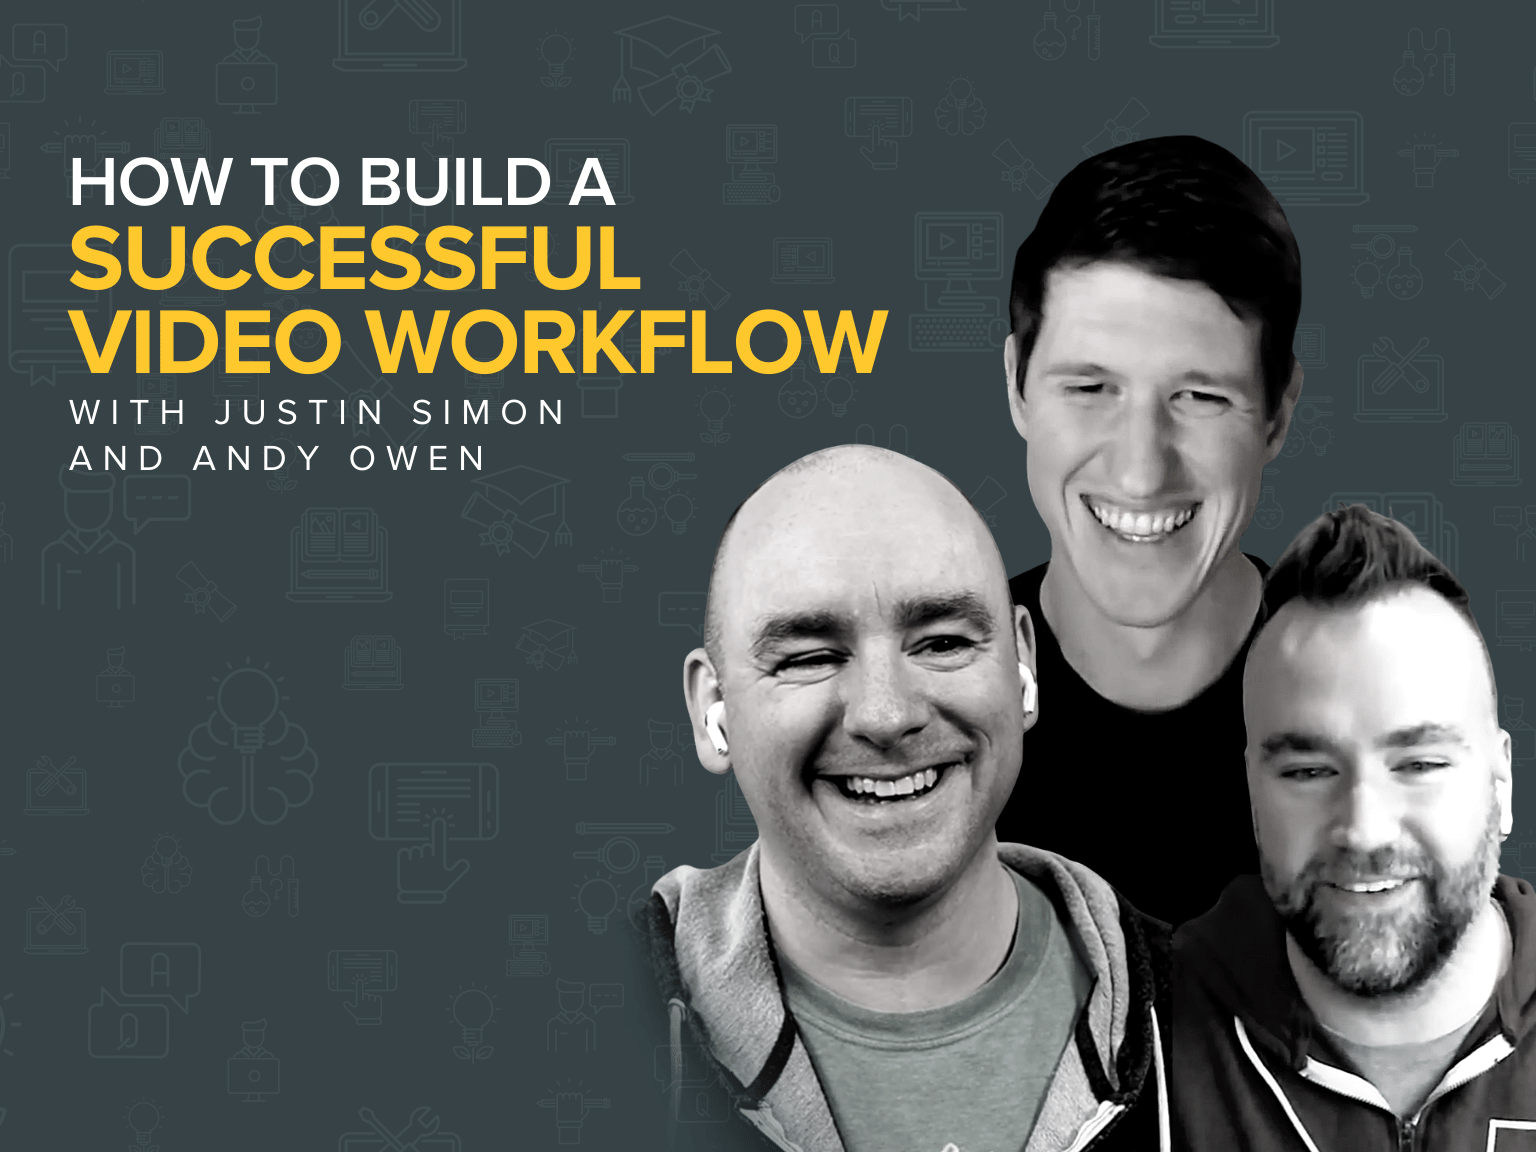 How to Build a Successful Video Workflow